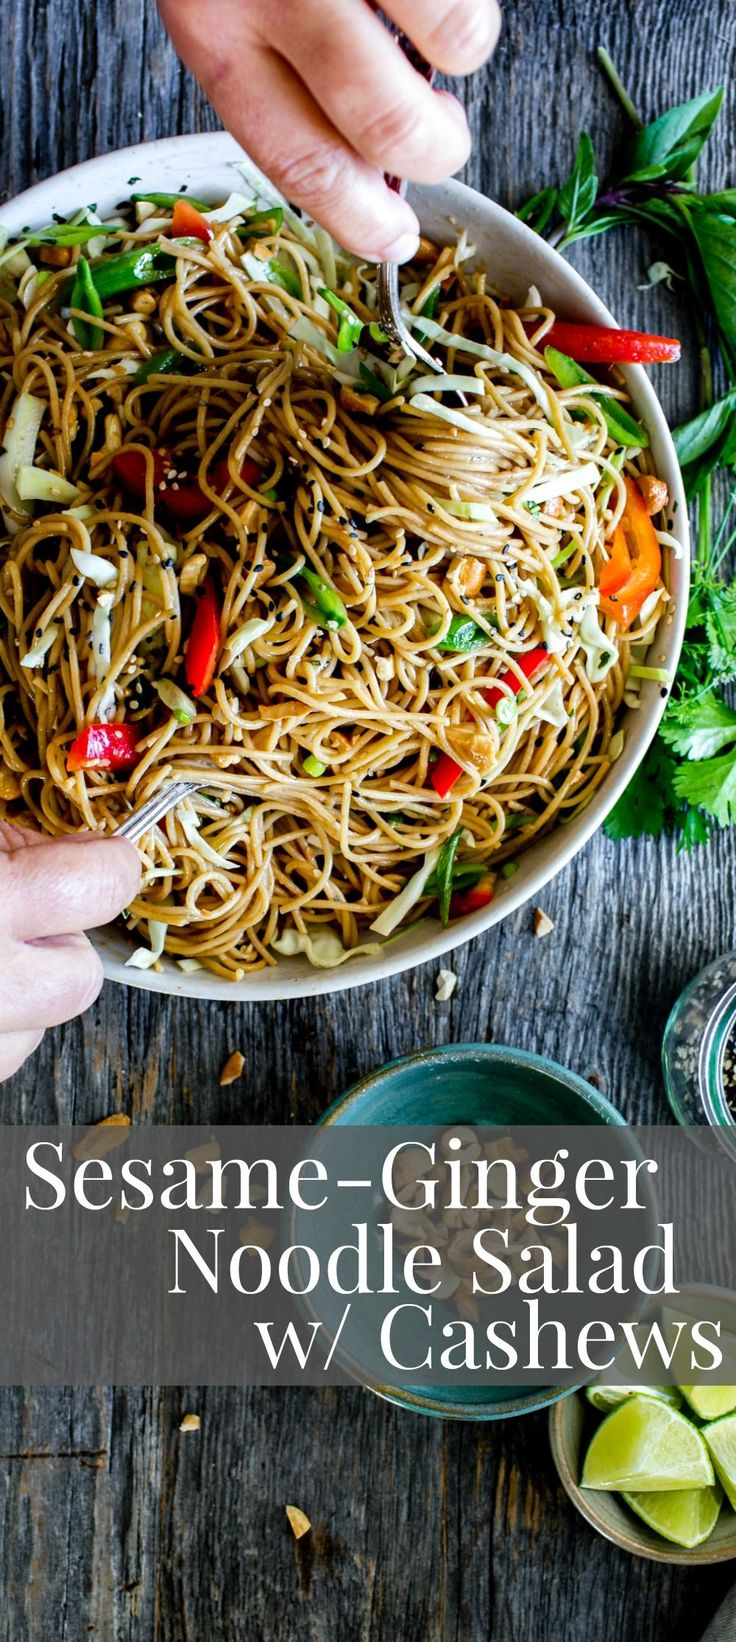 A flavor packed sauce with crunchy veggies, Sesame-Ginger Noodle Salad with Cashews comes together with ease. Make once, eat all week! Vegan + GF